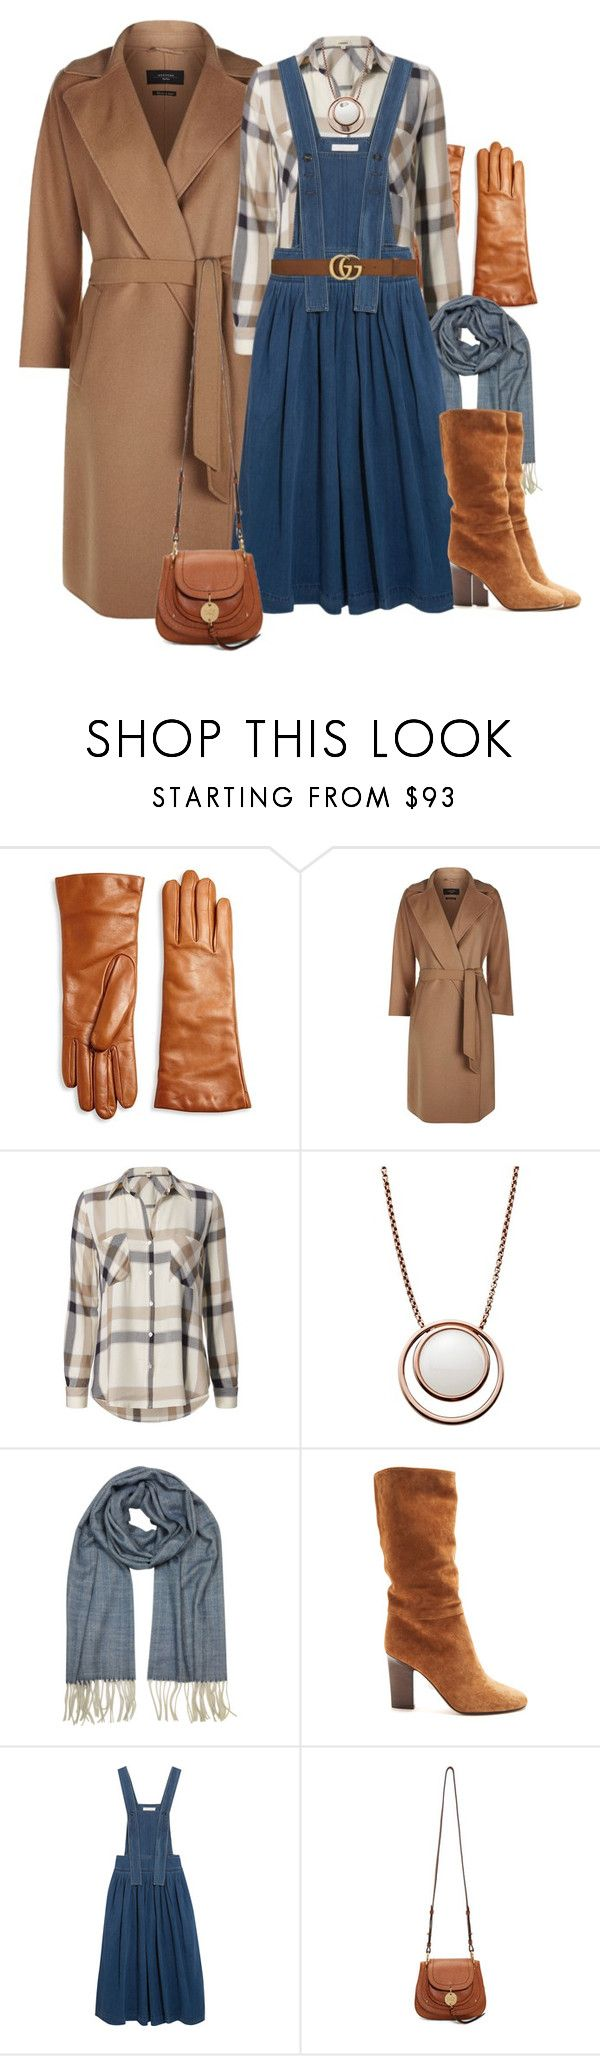 """fm #371"" by u-929 ❤ liked on Polyvore featuring Saks Fifth Avenue Collection, Weekend Max Mara, L'Agence, Skagen, Mila Schön, Samuele Failli, Chloé, See by Chloé and Gucci"